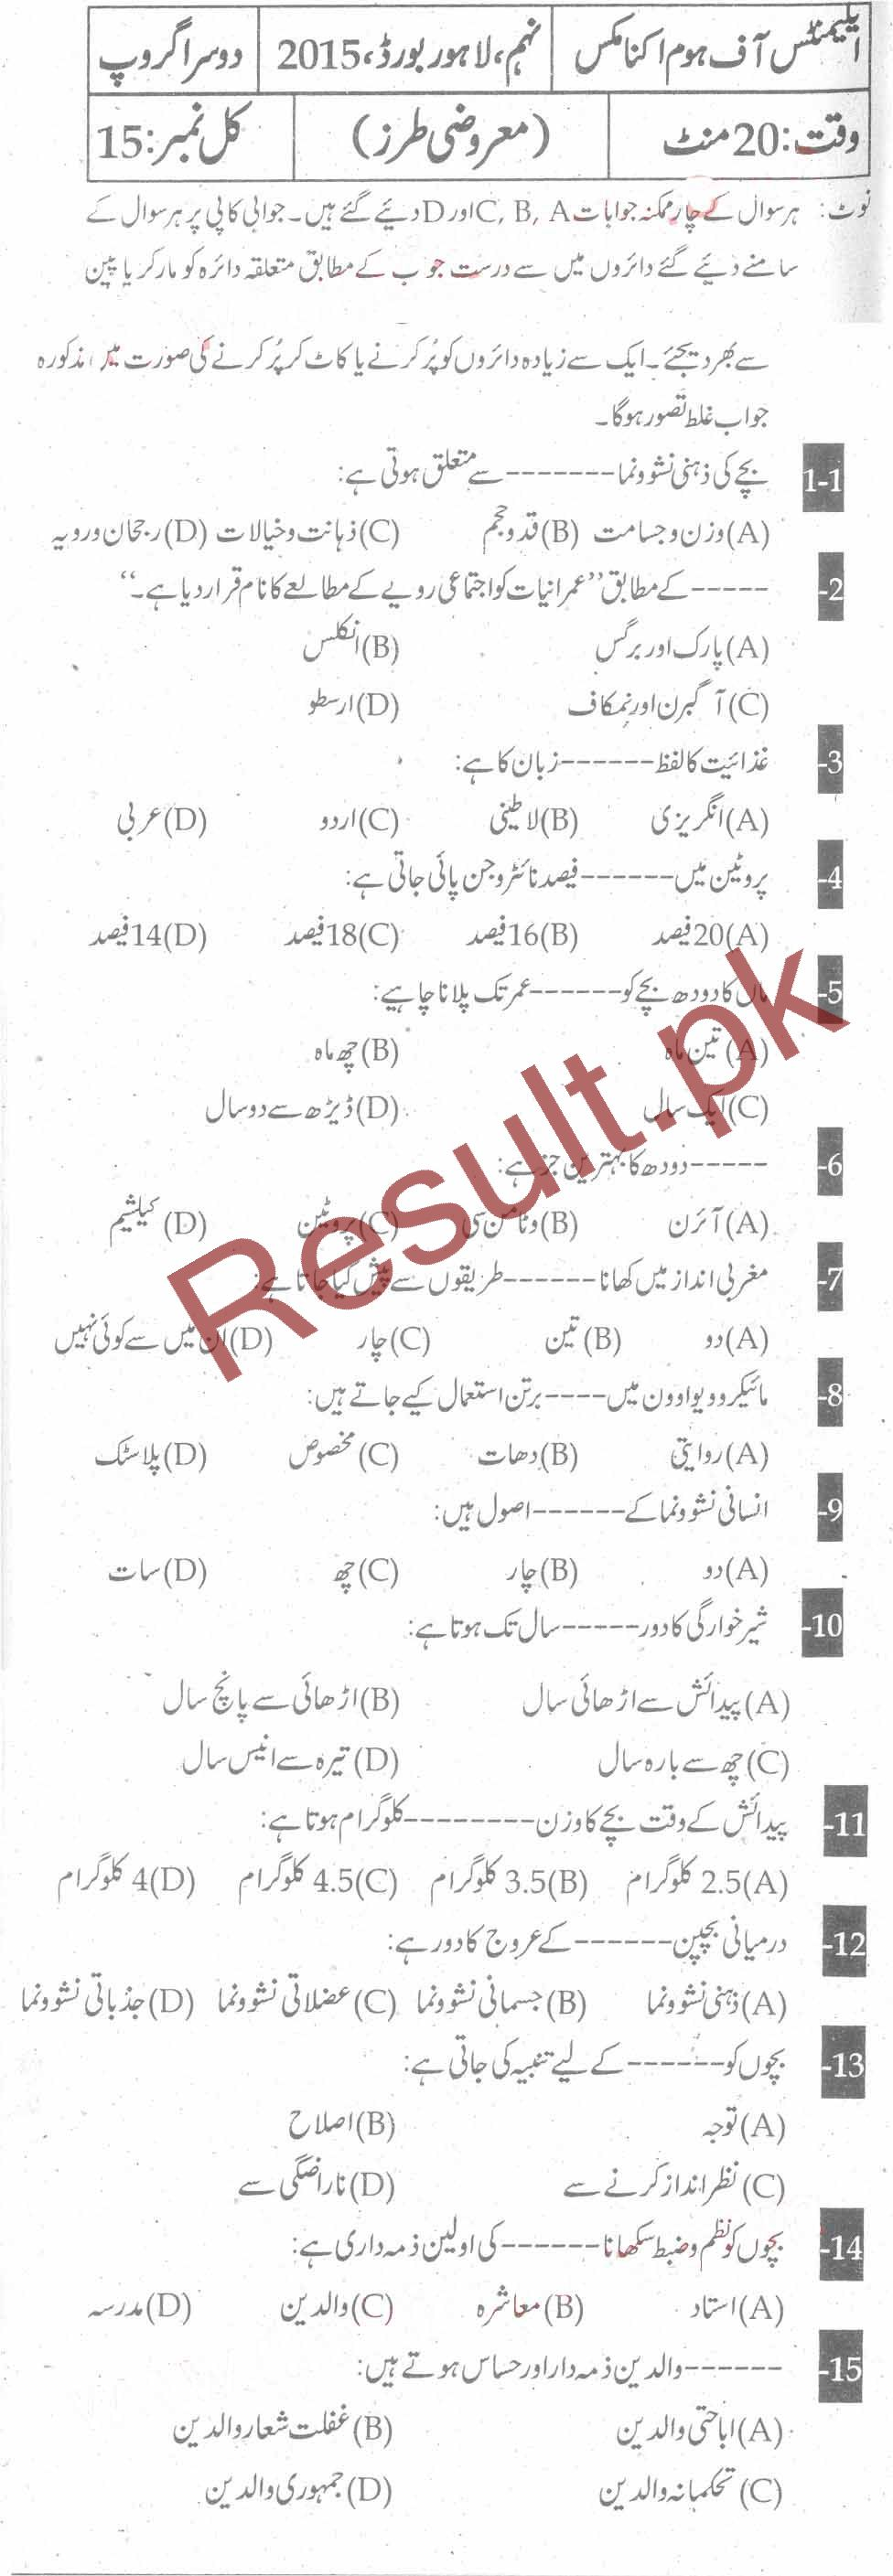 BISE DG Khan Board Past Papers 2019 Matric, SSC Part 1 & 2